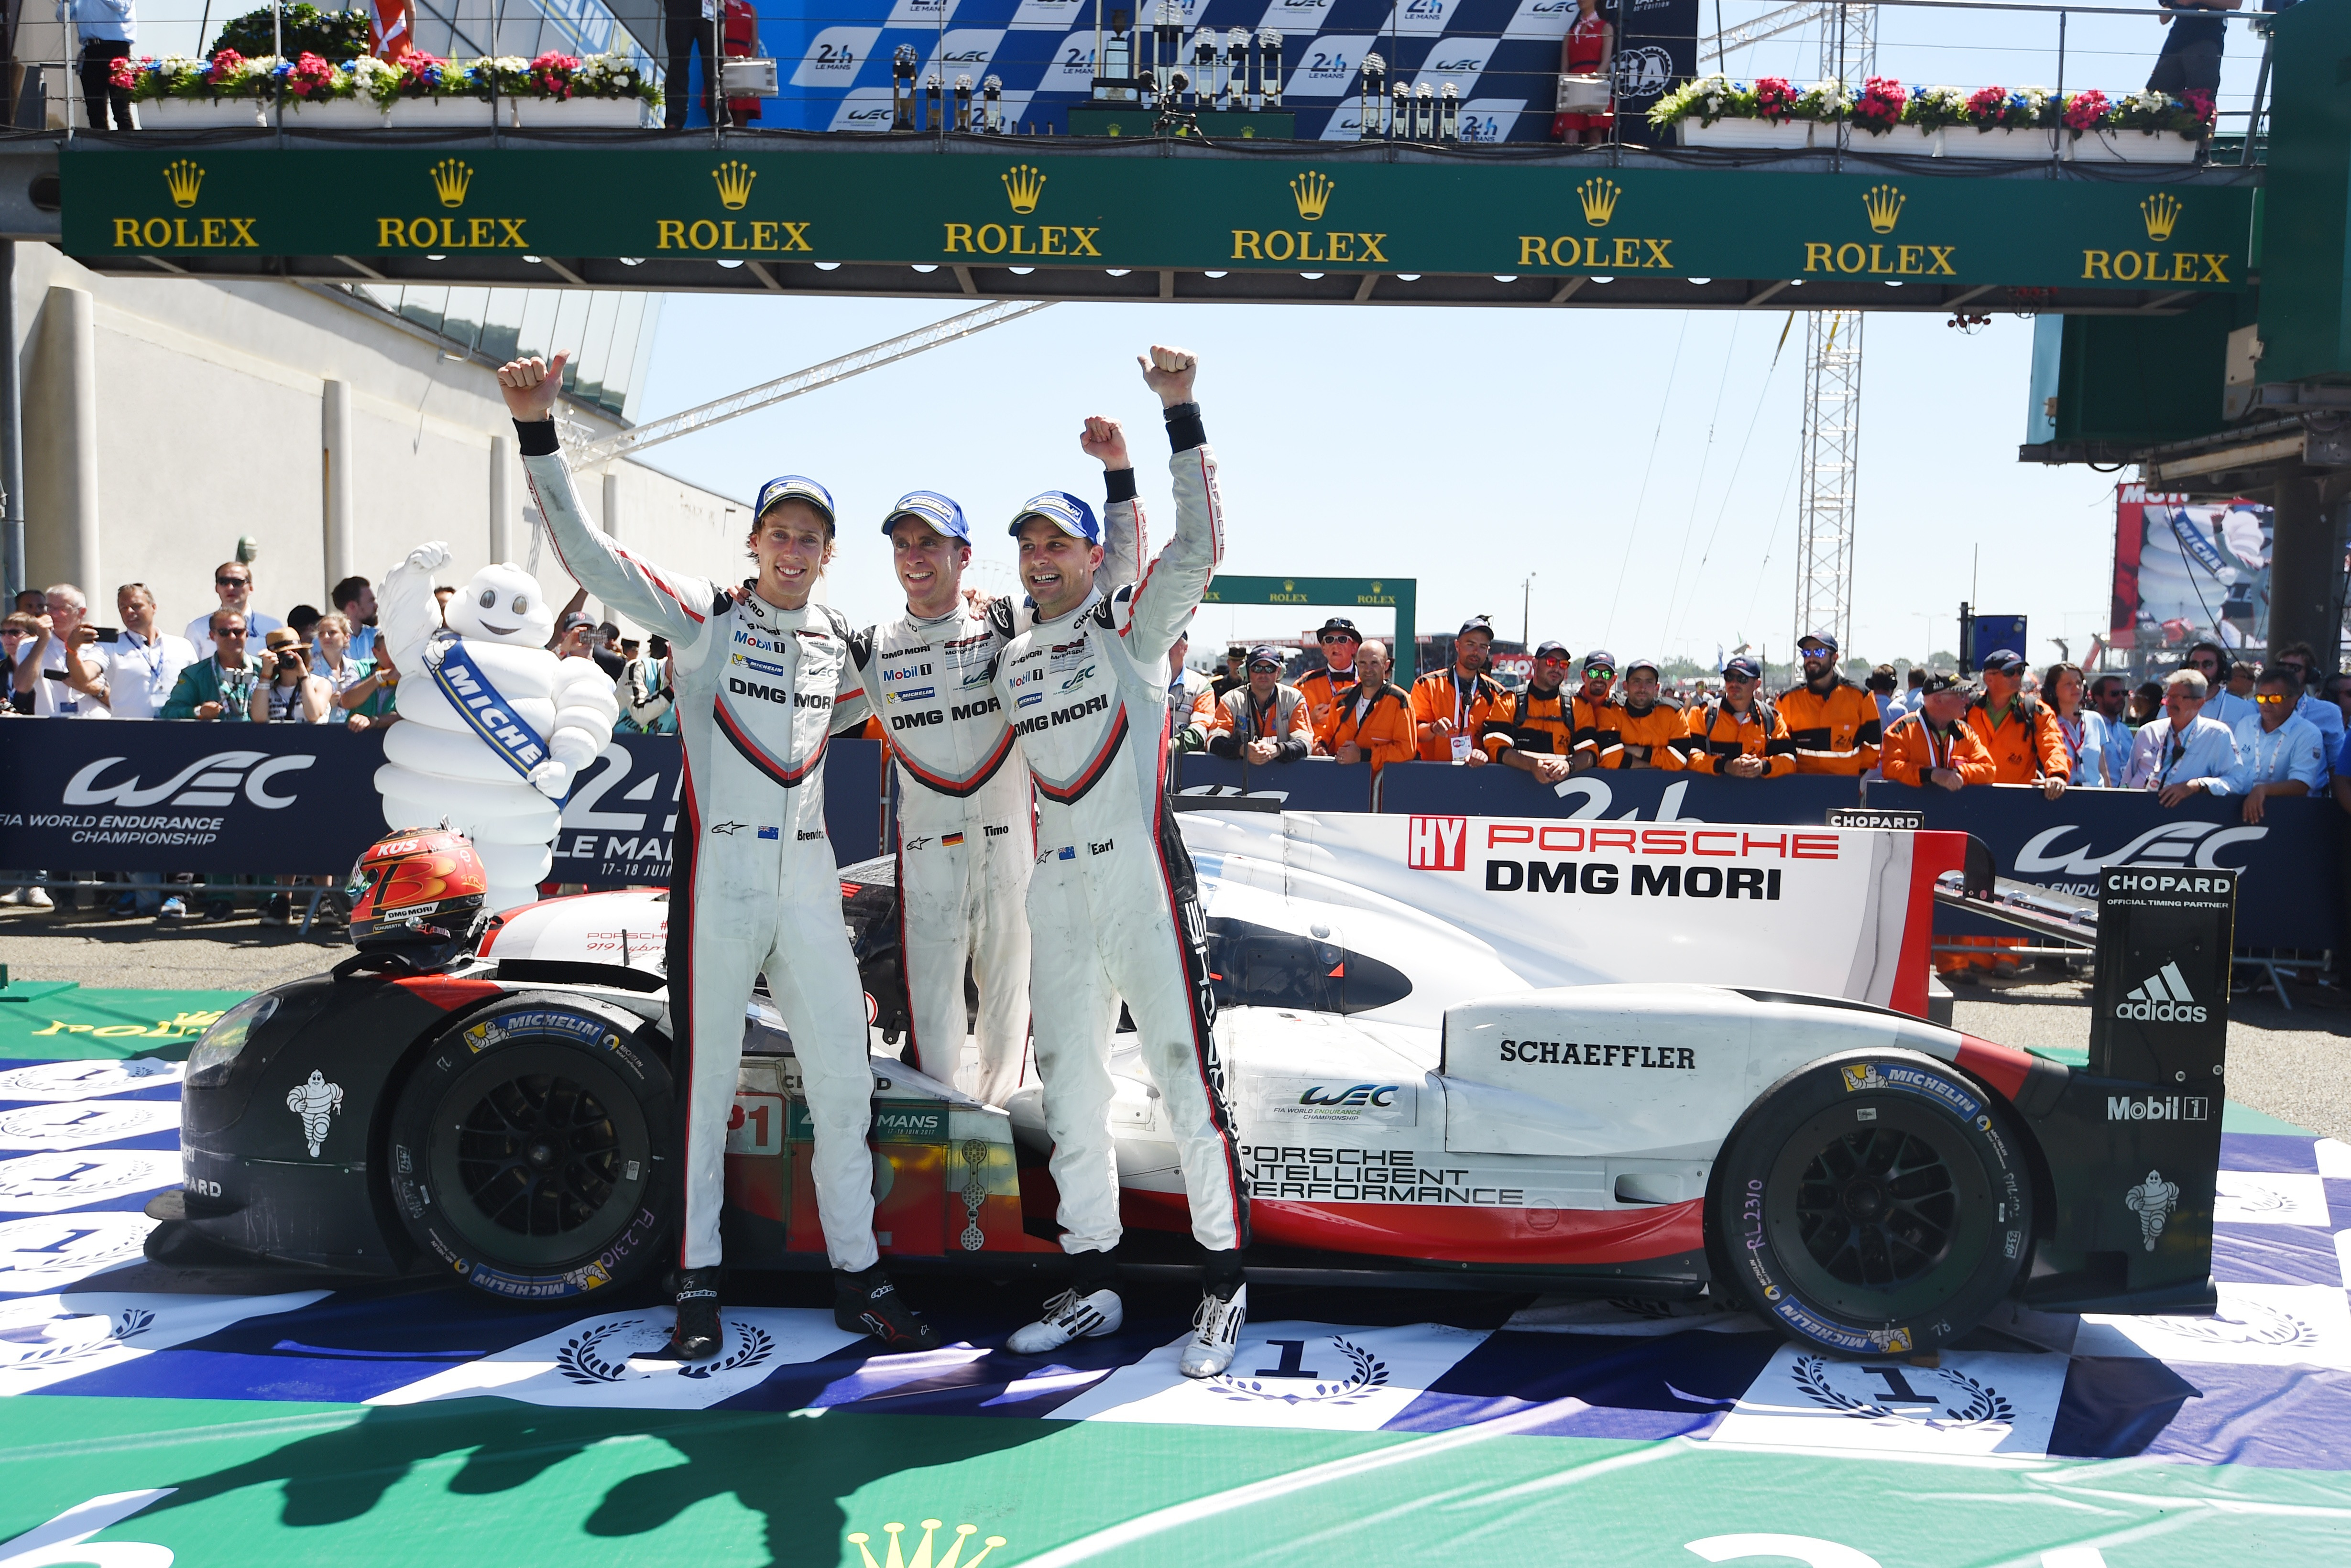 Kiwis Hartley and Bamber joined Bernhard to take advantage of more Toyota woe in Porsche's most recent win in 2017